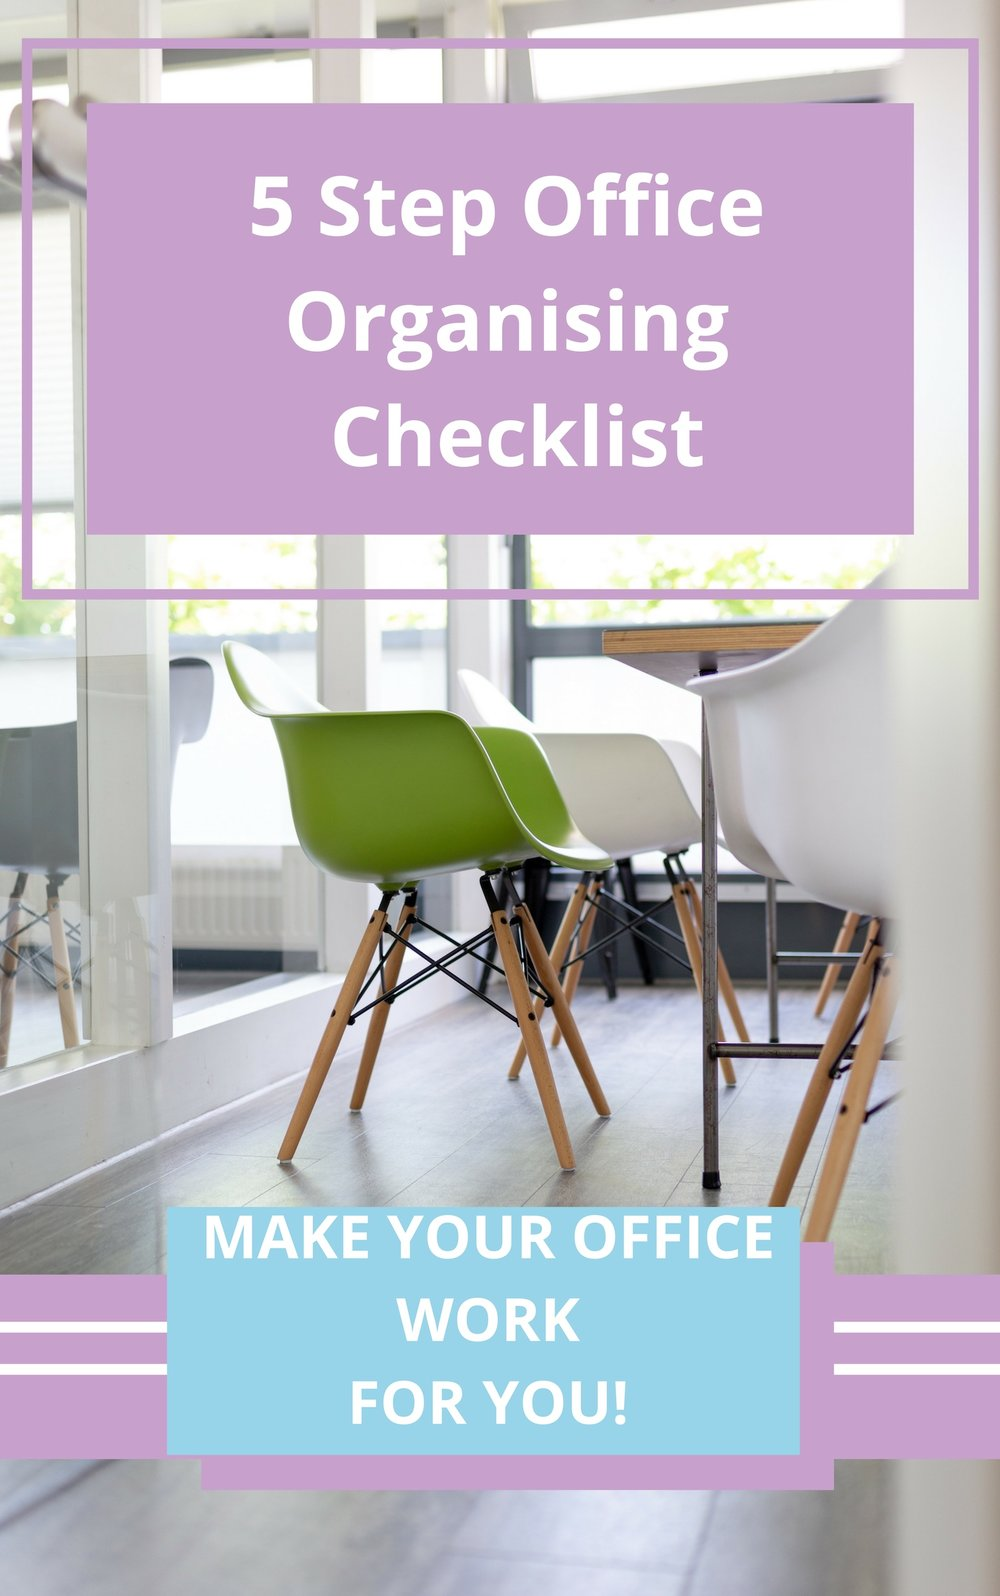 5 Step Office Organising Checklist - Office Organising starts here …..- ensure you put profits first by being organised- 5 steps to a more productive office- follow these steps and you see resultsDownload your free checklist with my compliments